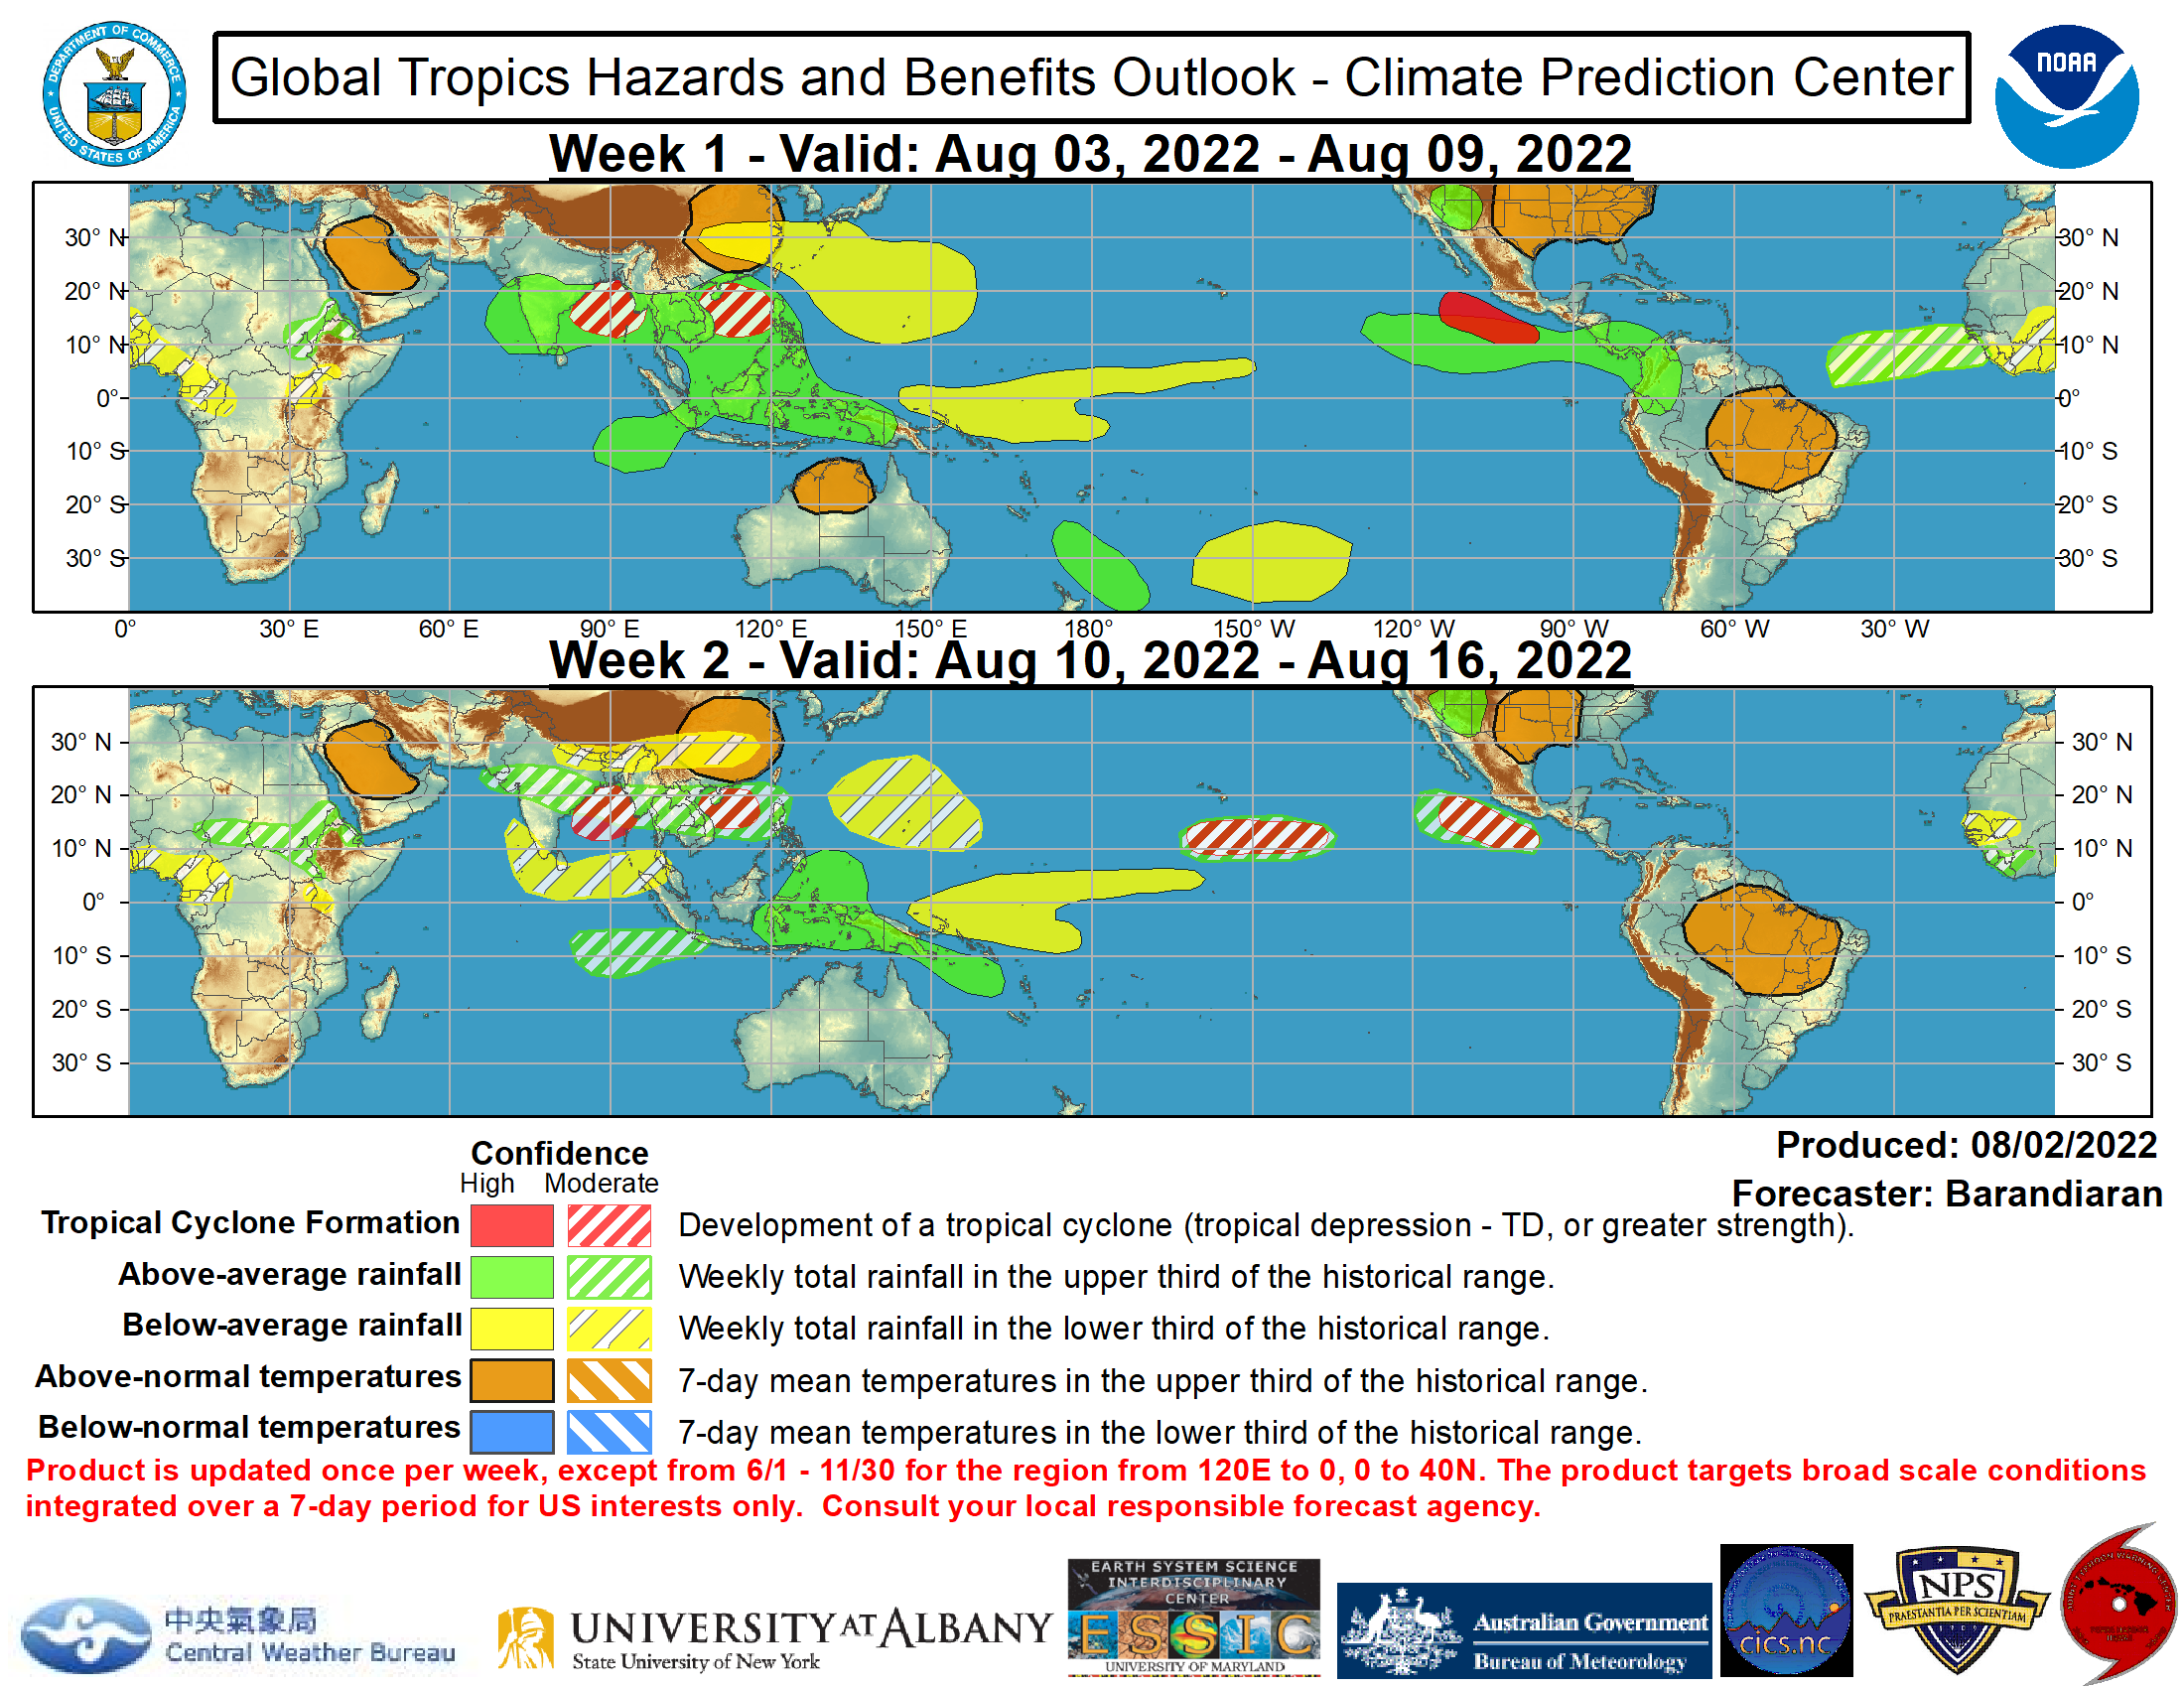 Global Tropics Hazards Outlook